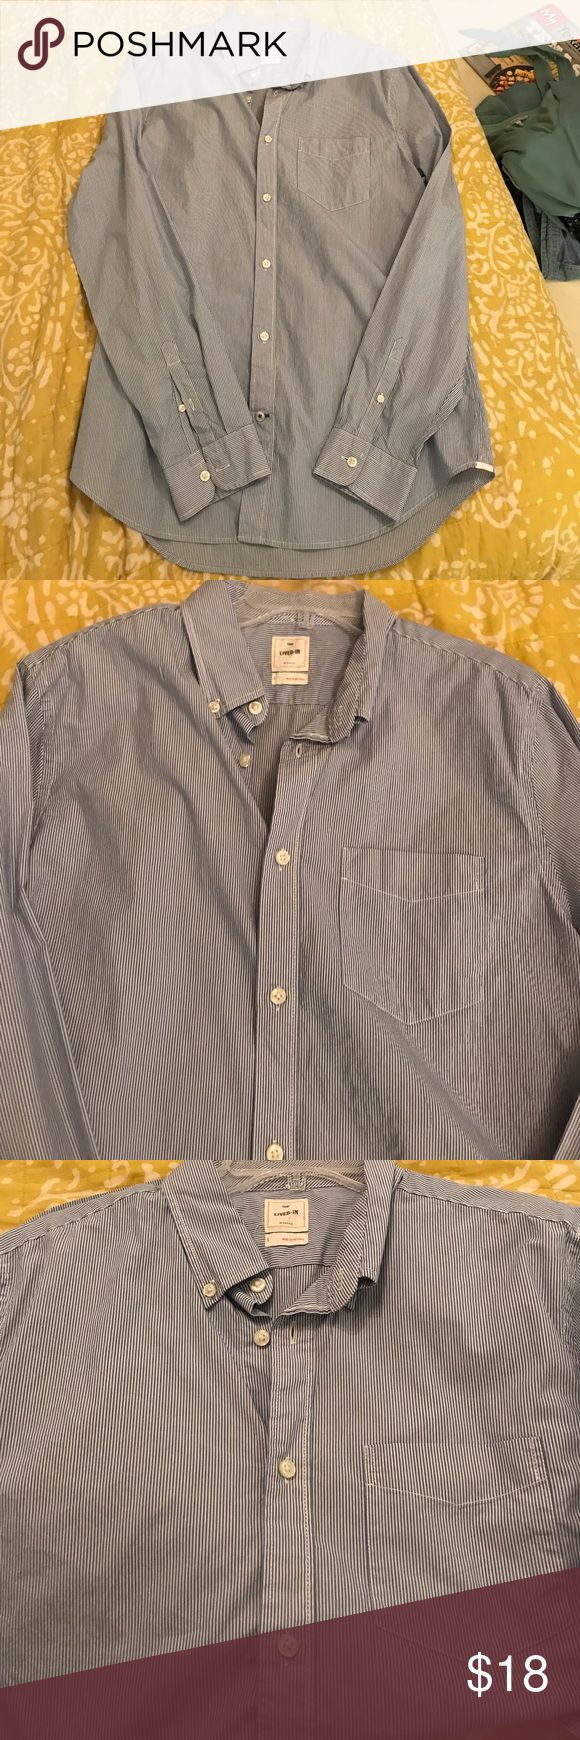 Gap men's casual shirt Shirt GAP Shirts Casual Button Down Shirts